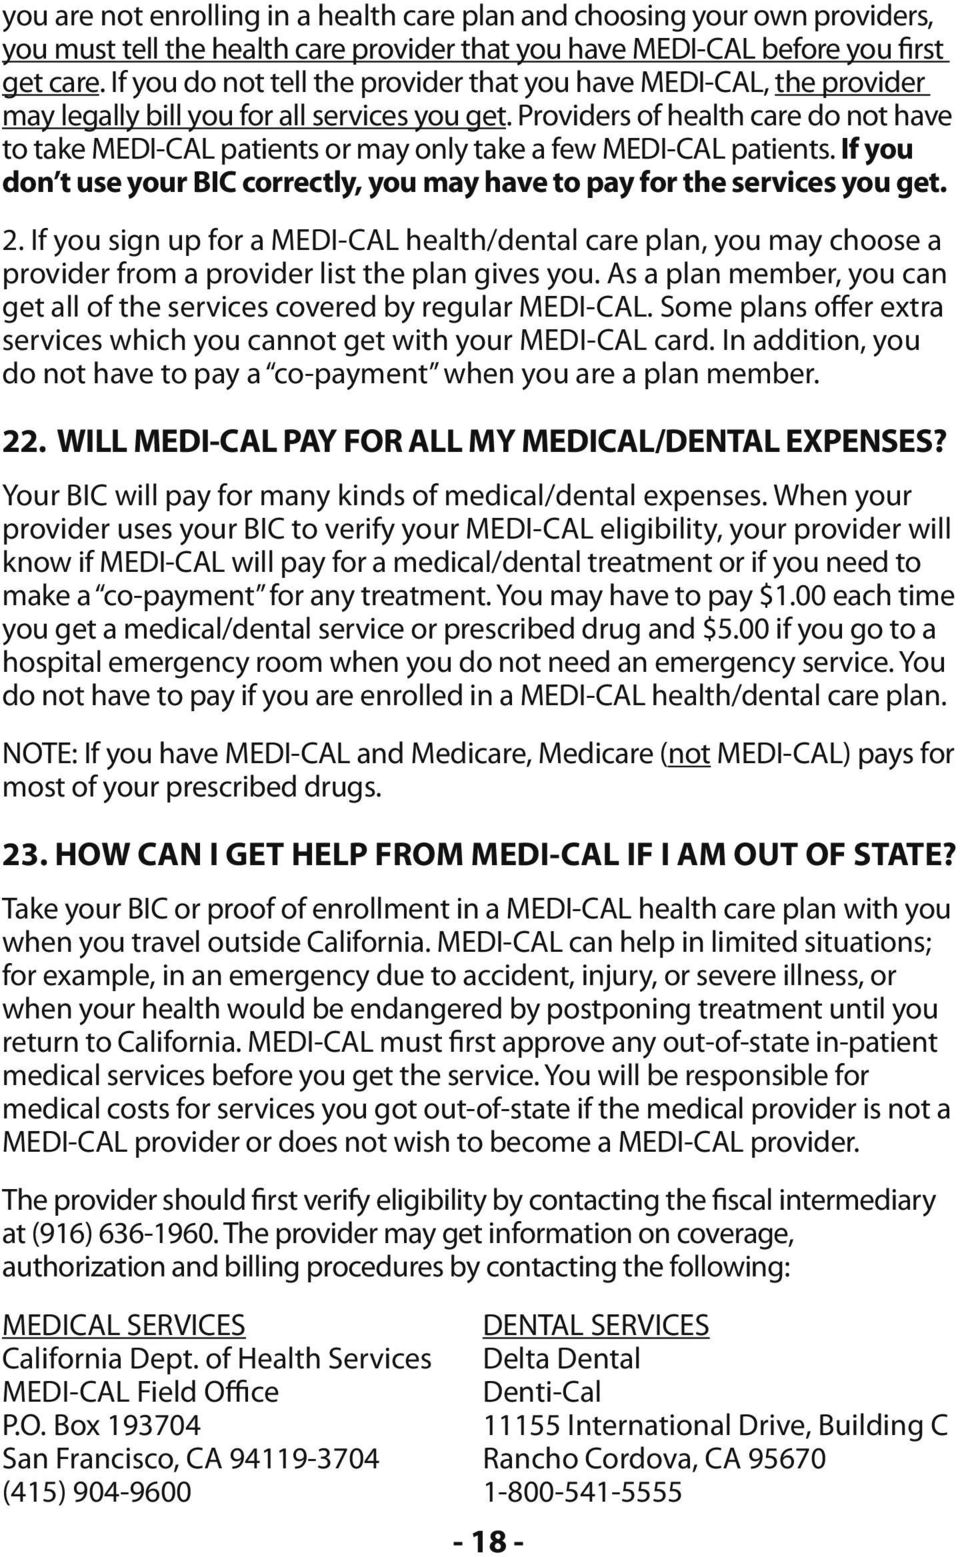 Providers of health care do not have to take MEDI-CAL patients or may only take a few MEDI-CAL patients. If you don t use your bic correctly, you may have to pay for the services you get. 2.